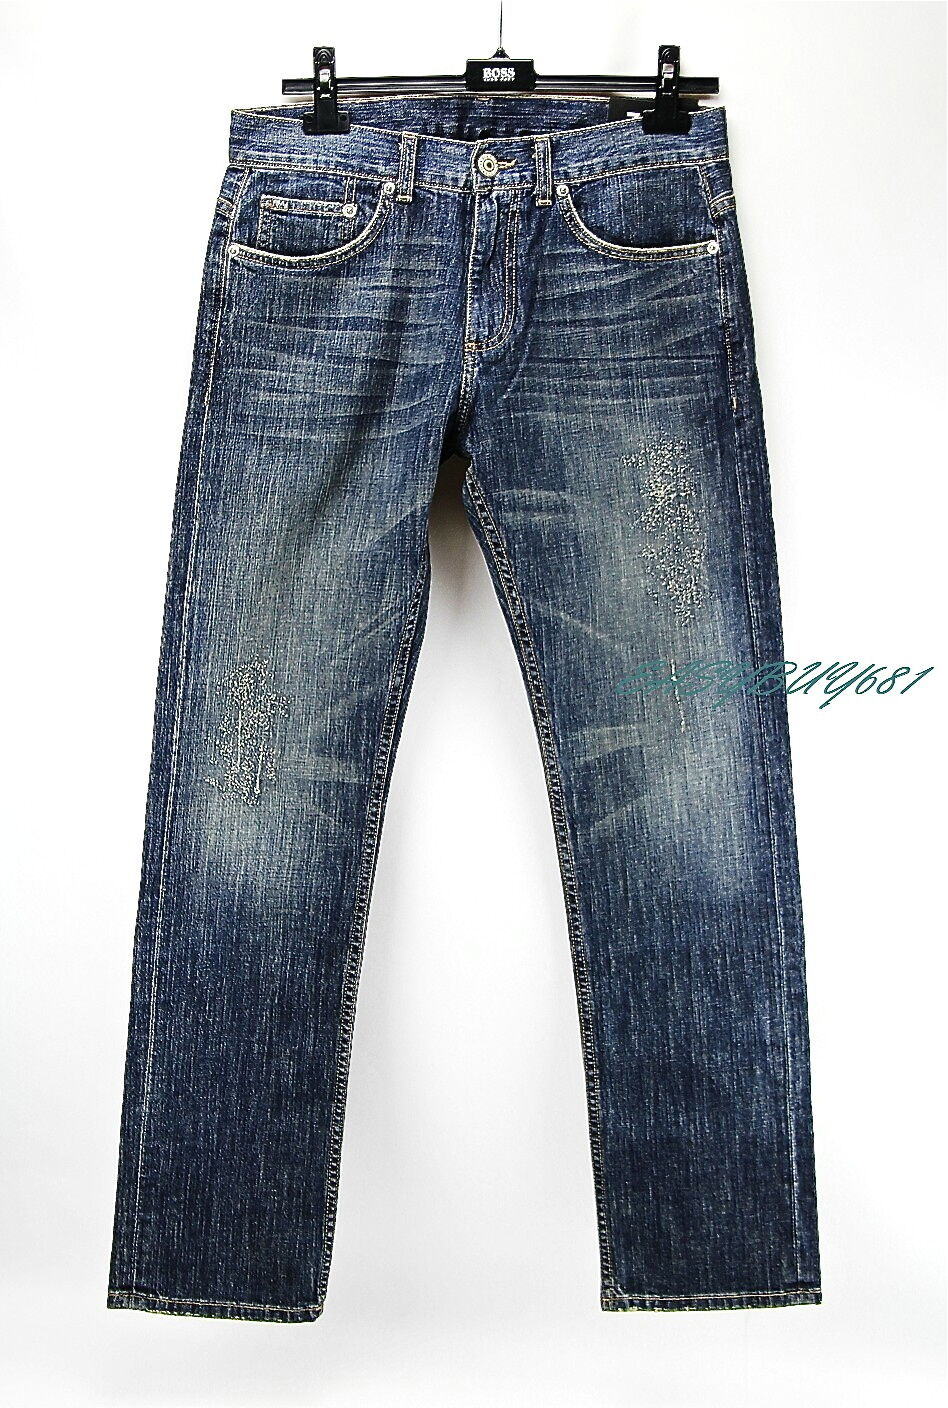 A X ARMANI EXCHANGE J66 Distressed JEANS STRAIGHT 100% Cotton, Made in USA